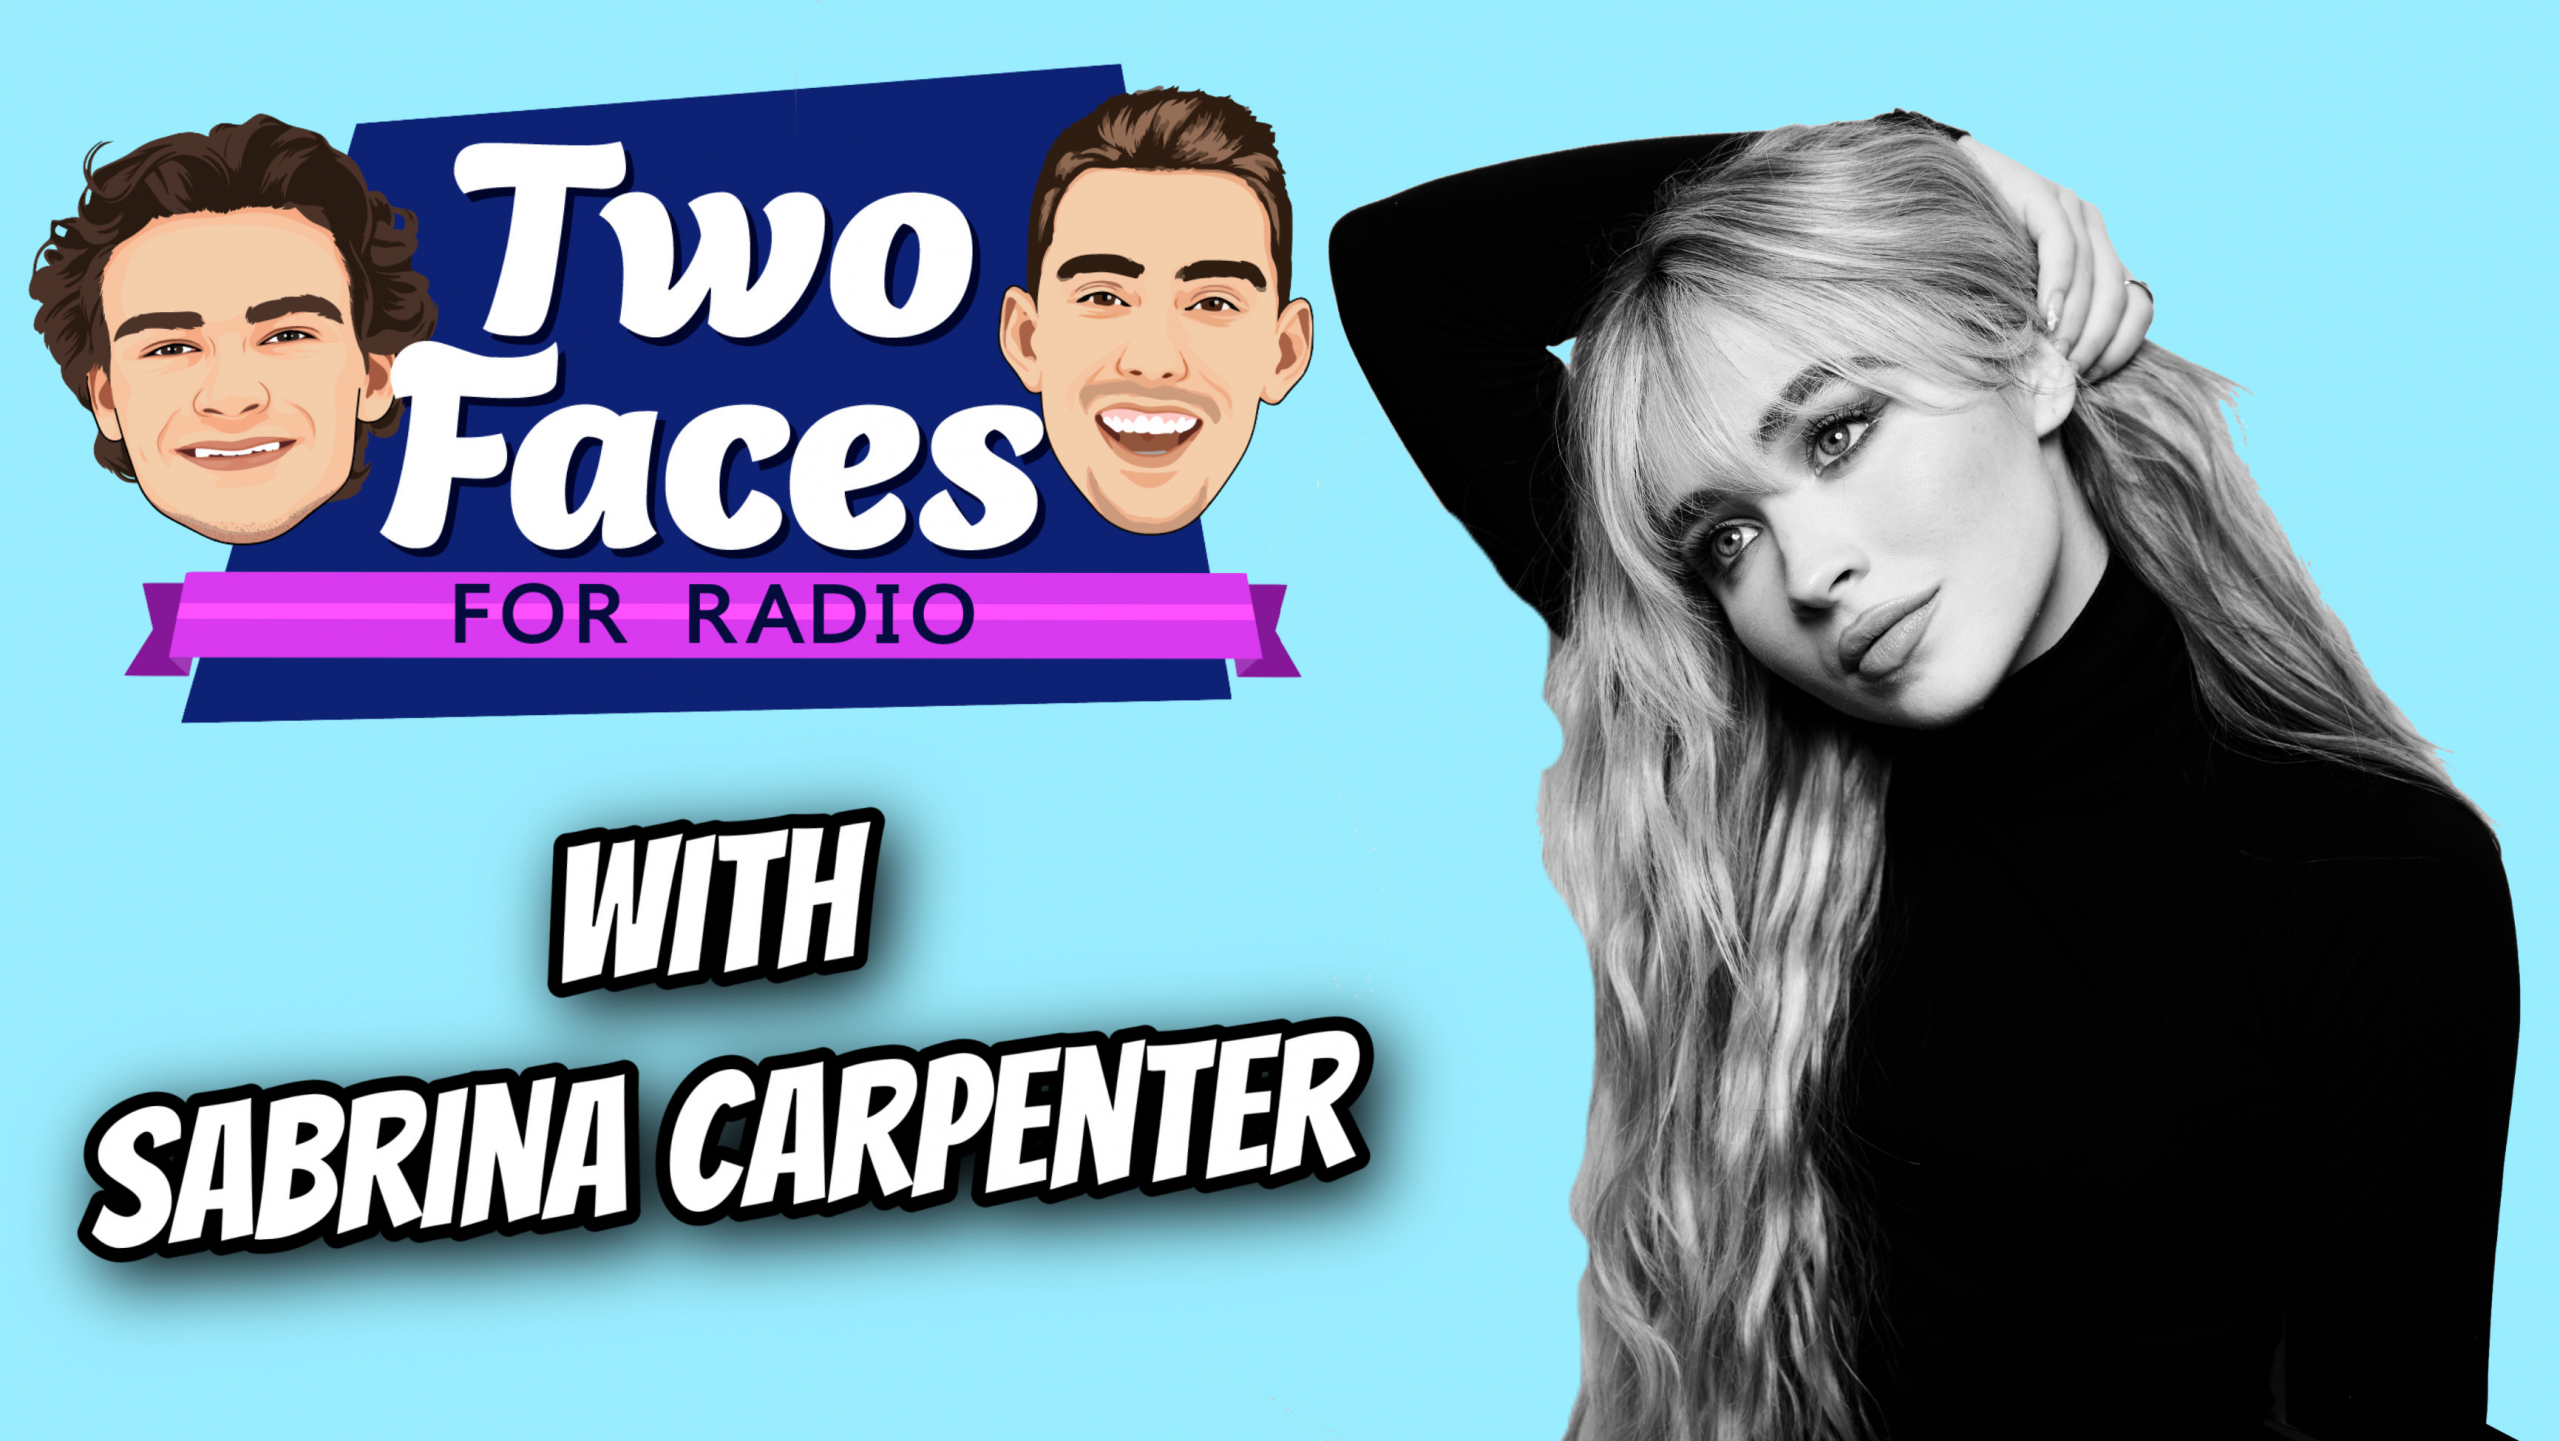 Sabrina Carpenter Joins The Two Faces For Radio Podcast [WATCH]